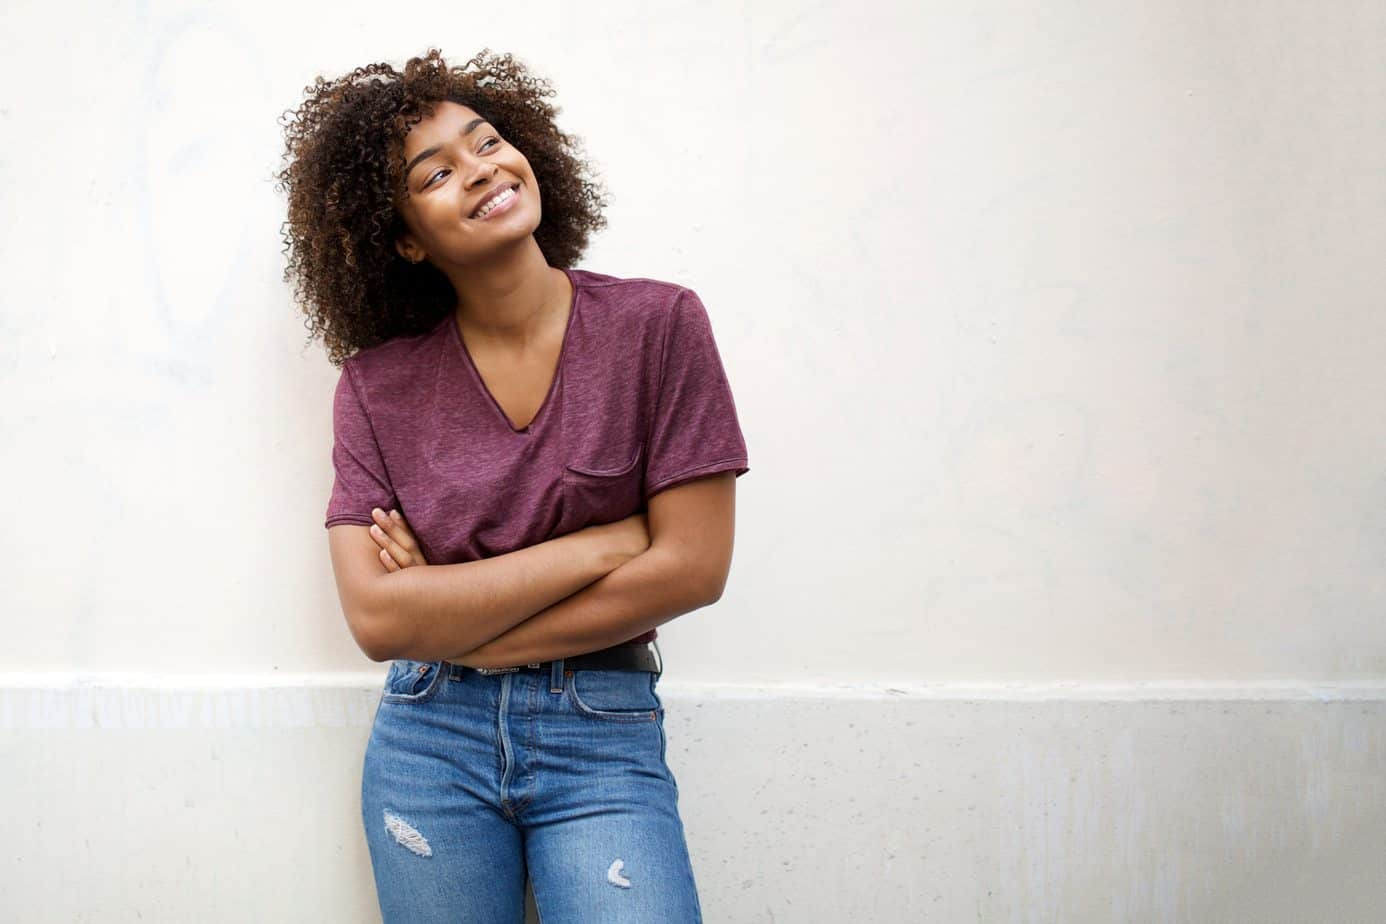 Cute black female with her arms crossed wearing a purple t-shirt and jeans